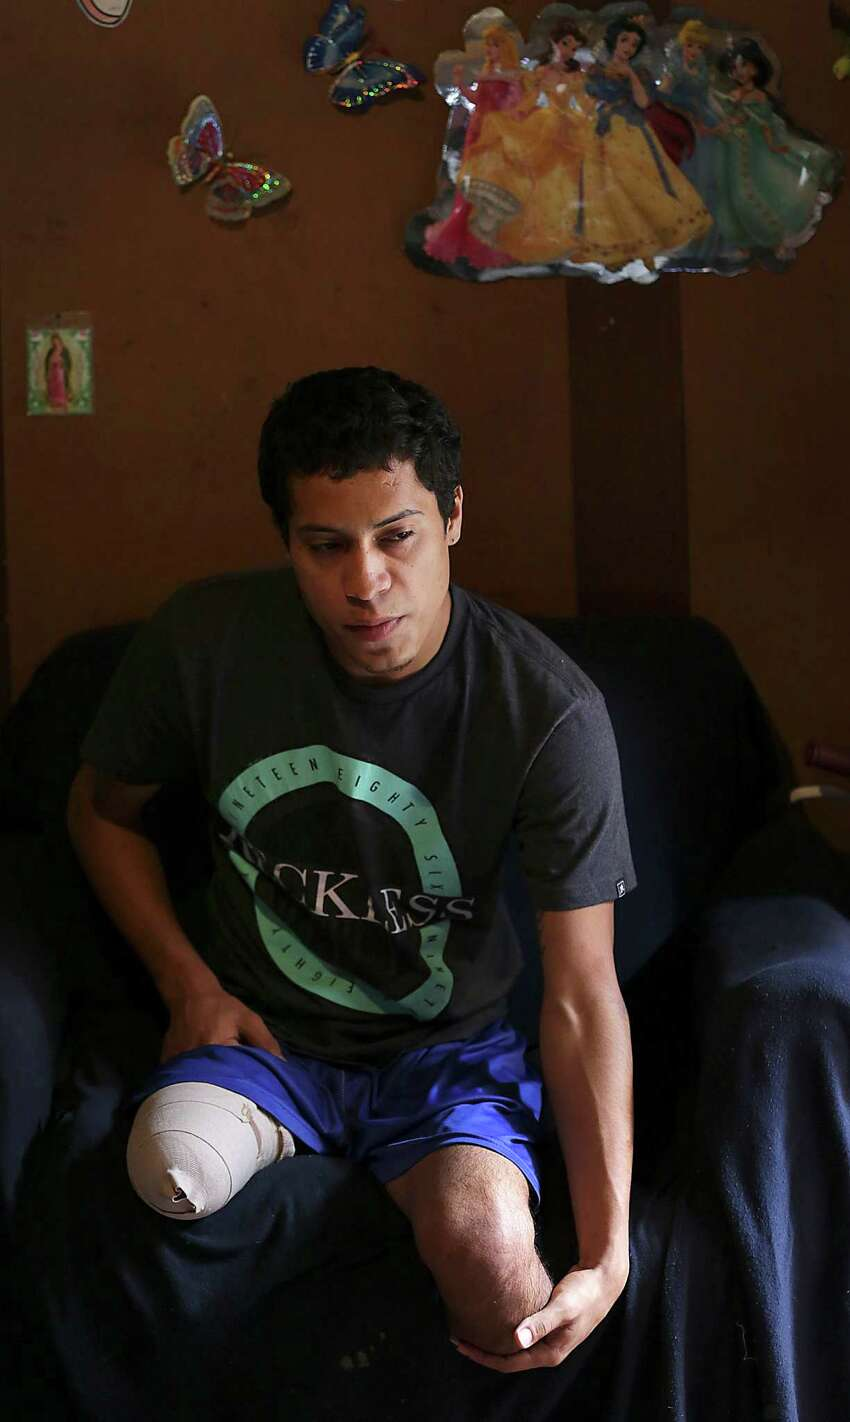 Marco Oliva, 21, rubs in leg in his home in Tegucigalpa. Oliva had his legs amputated after trying to jump on a train heading north through Mexico earlier this year. He lives in a house in Barrio Colonia Divanna dominated by the gang